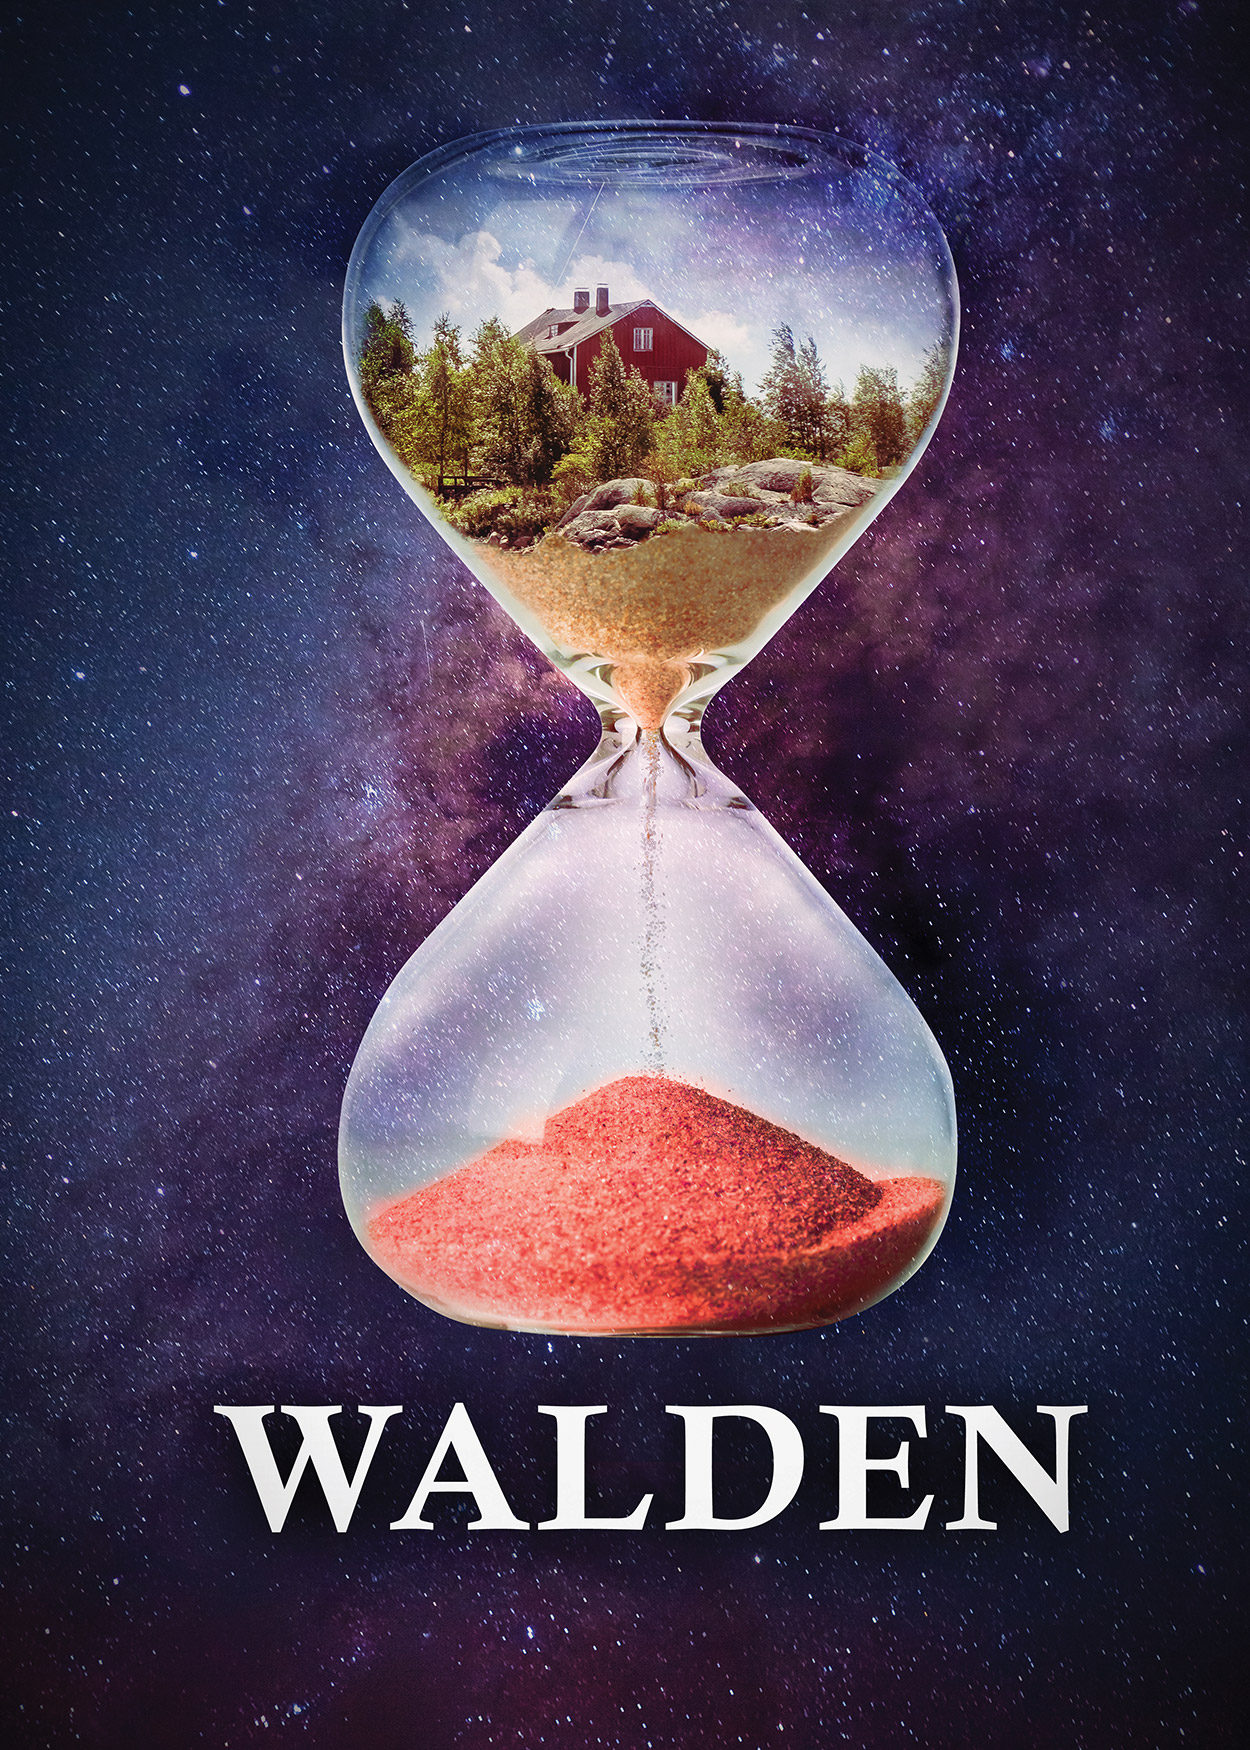 Key Art from Walden (2019). At the forefront of the image is a hourglass. The top bulb has a red house amongst tall trees. There is sand trickling down to the bottom bulb which is filling up with red sand. The hourglass is seemlingly floating through space.